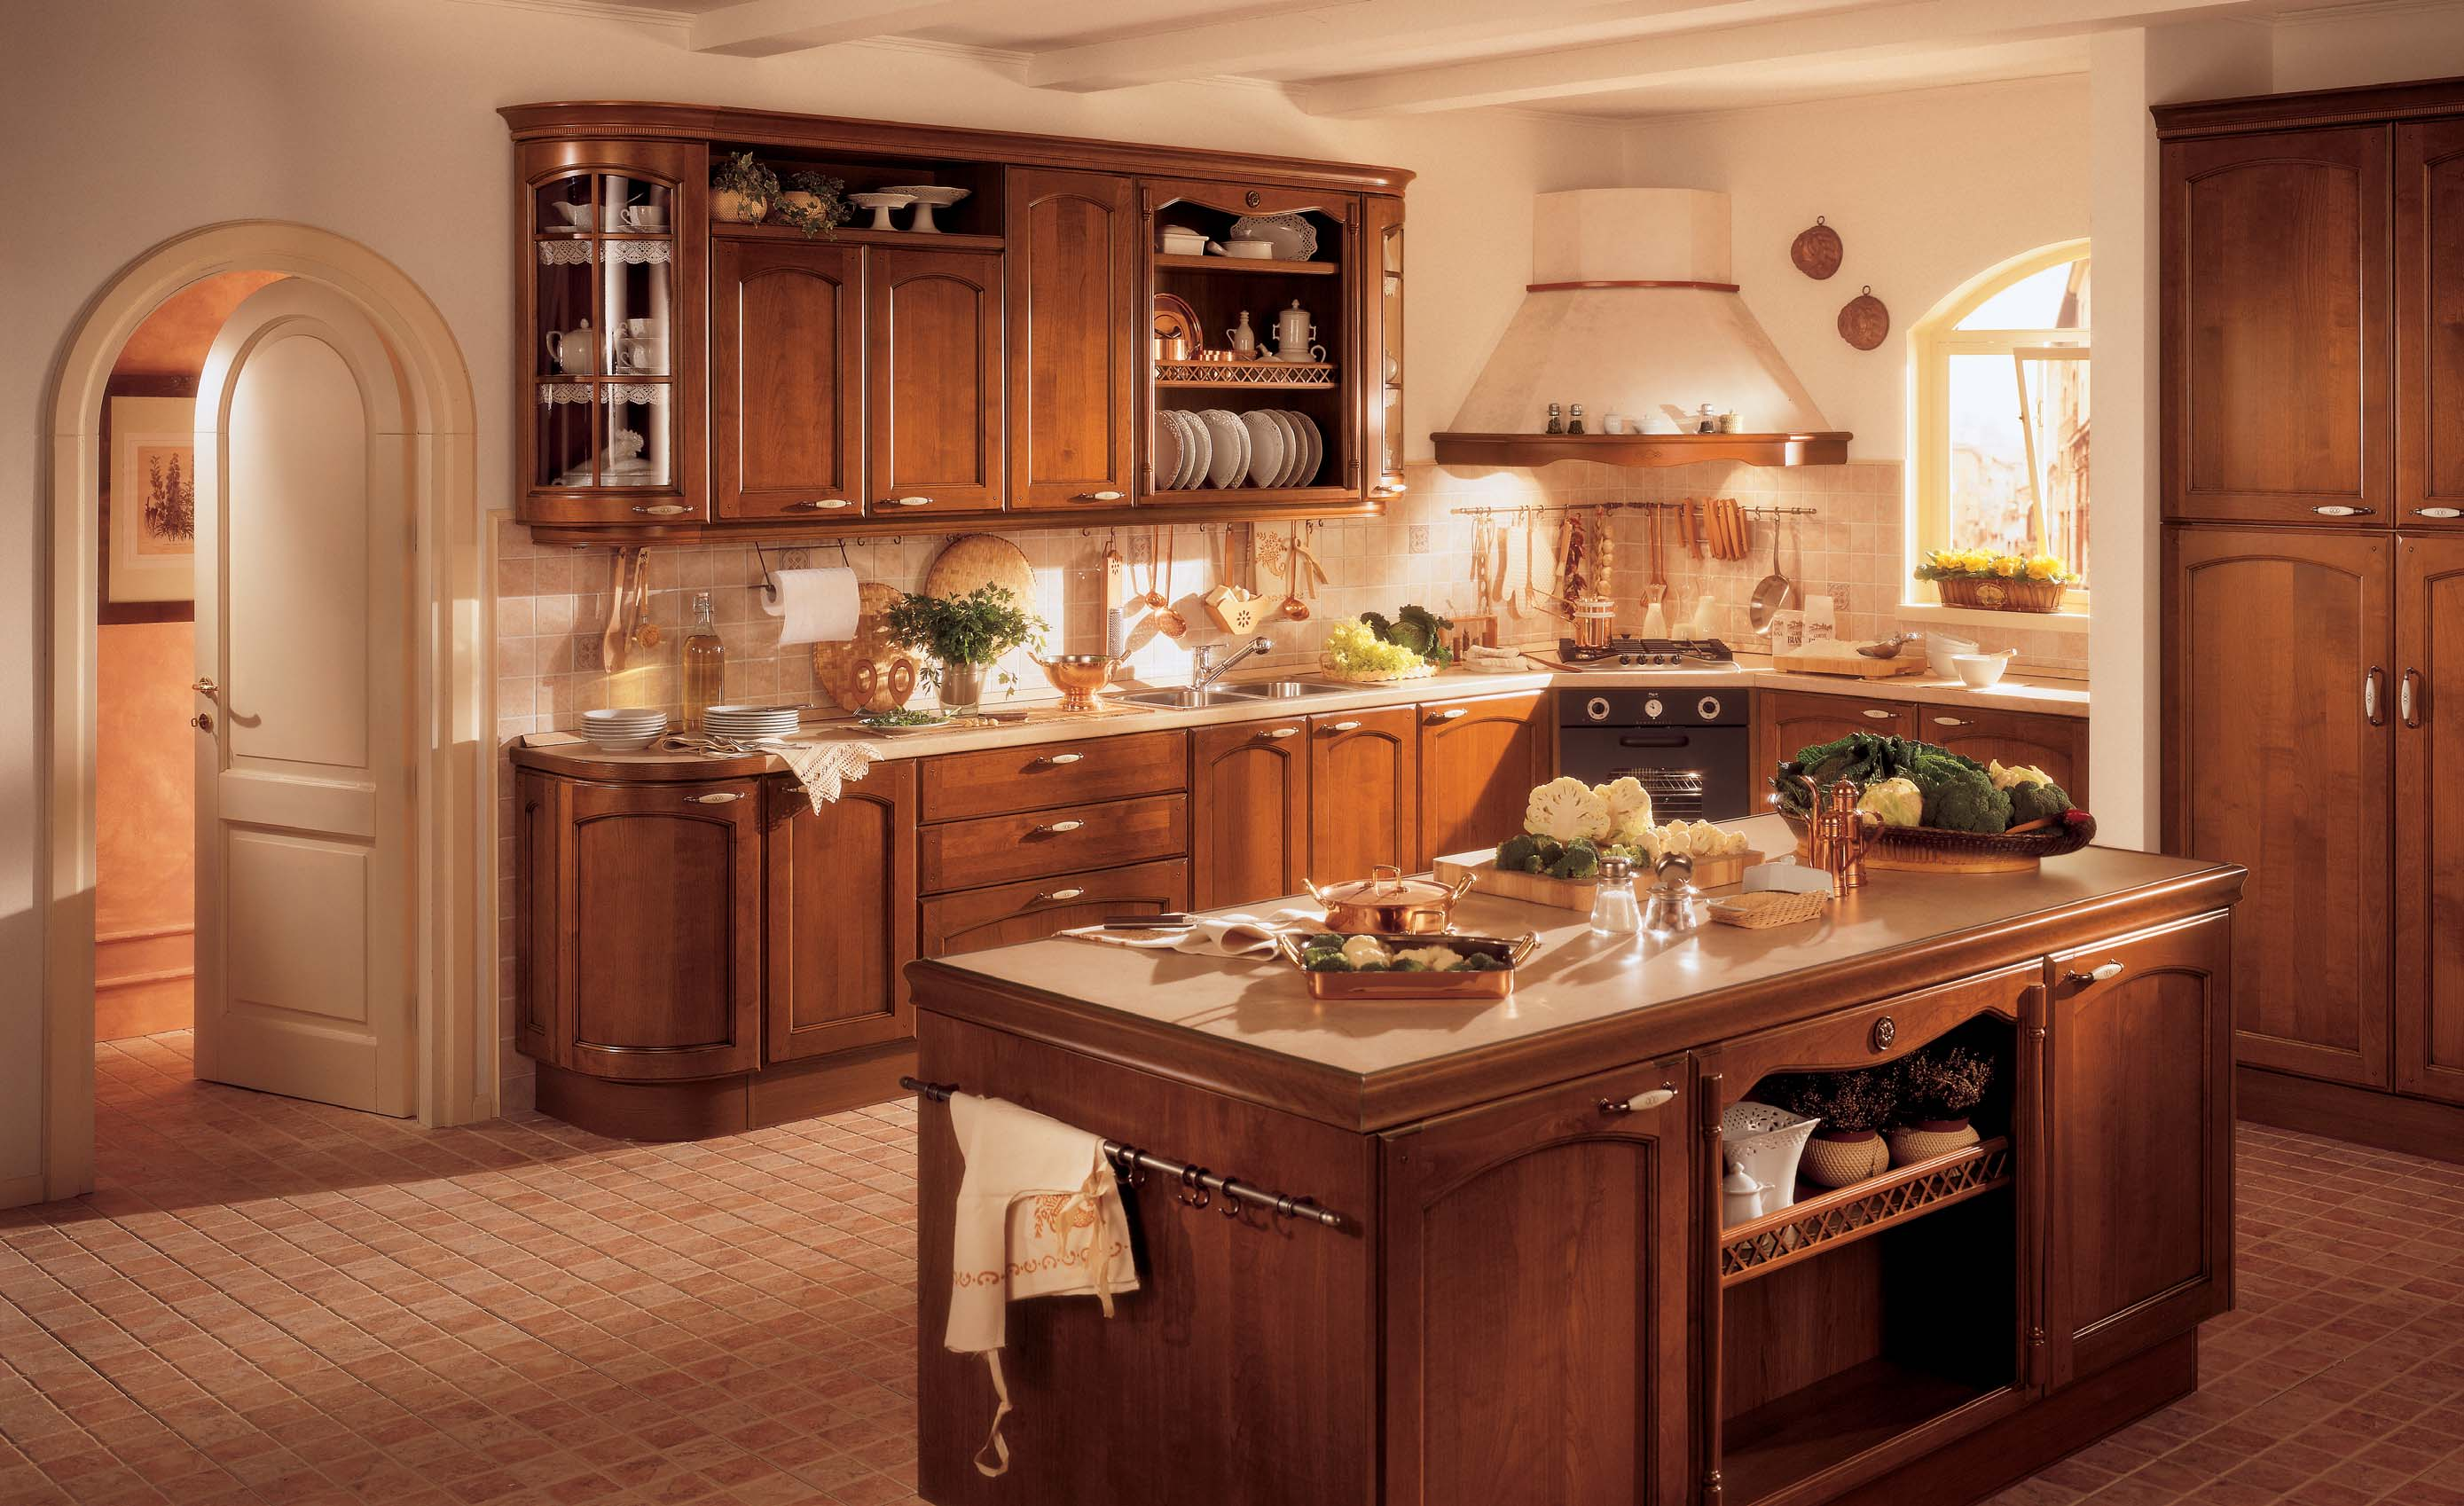 Epoca classic kitchen interior design for Kitchen interior decorating ideas